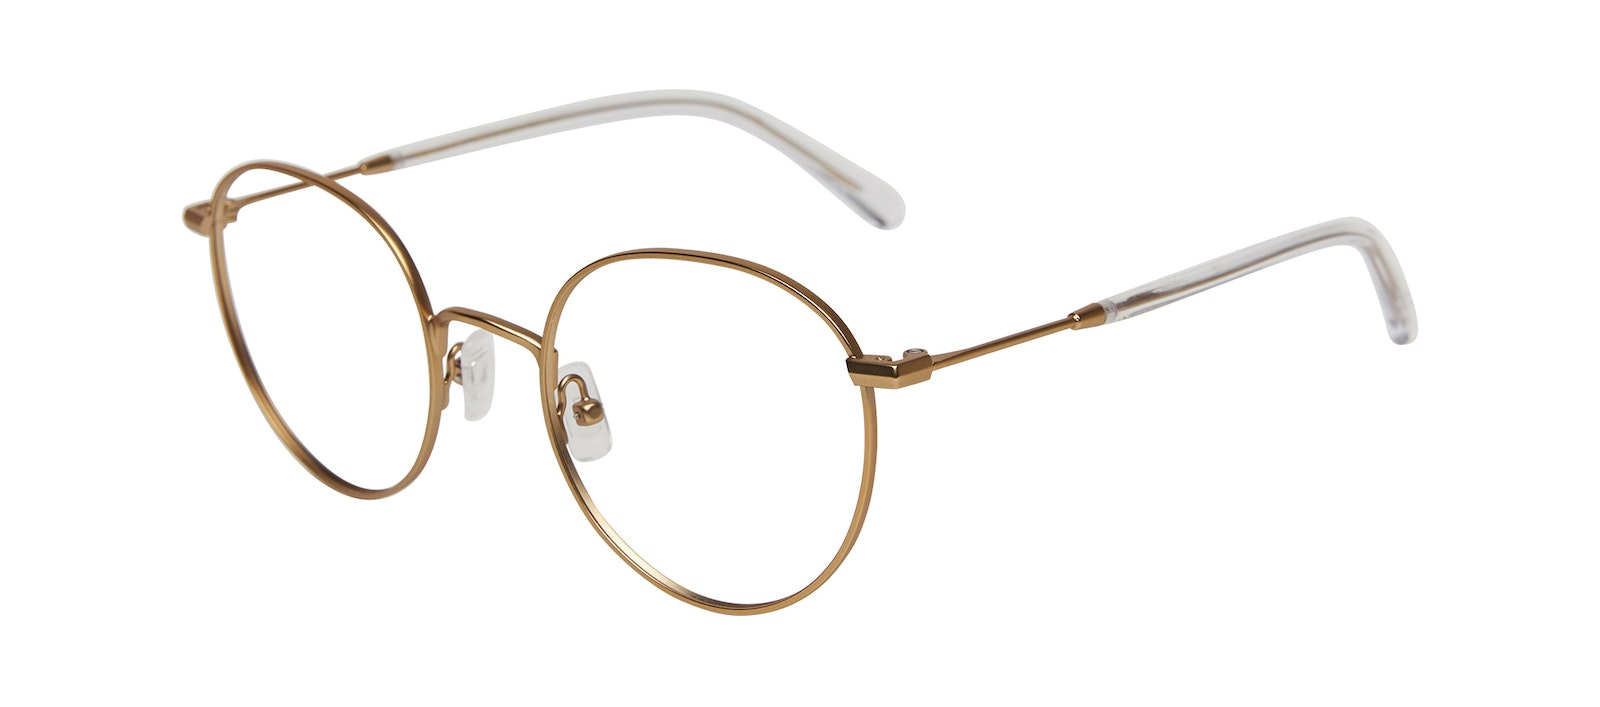 Affordable Fashion Glasses Round Eyeglasses Women Finesse Matte Gold Tilt